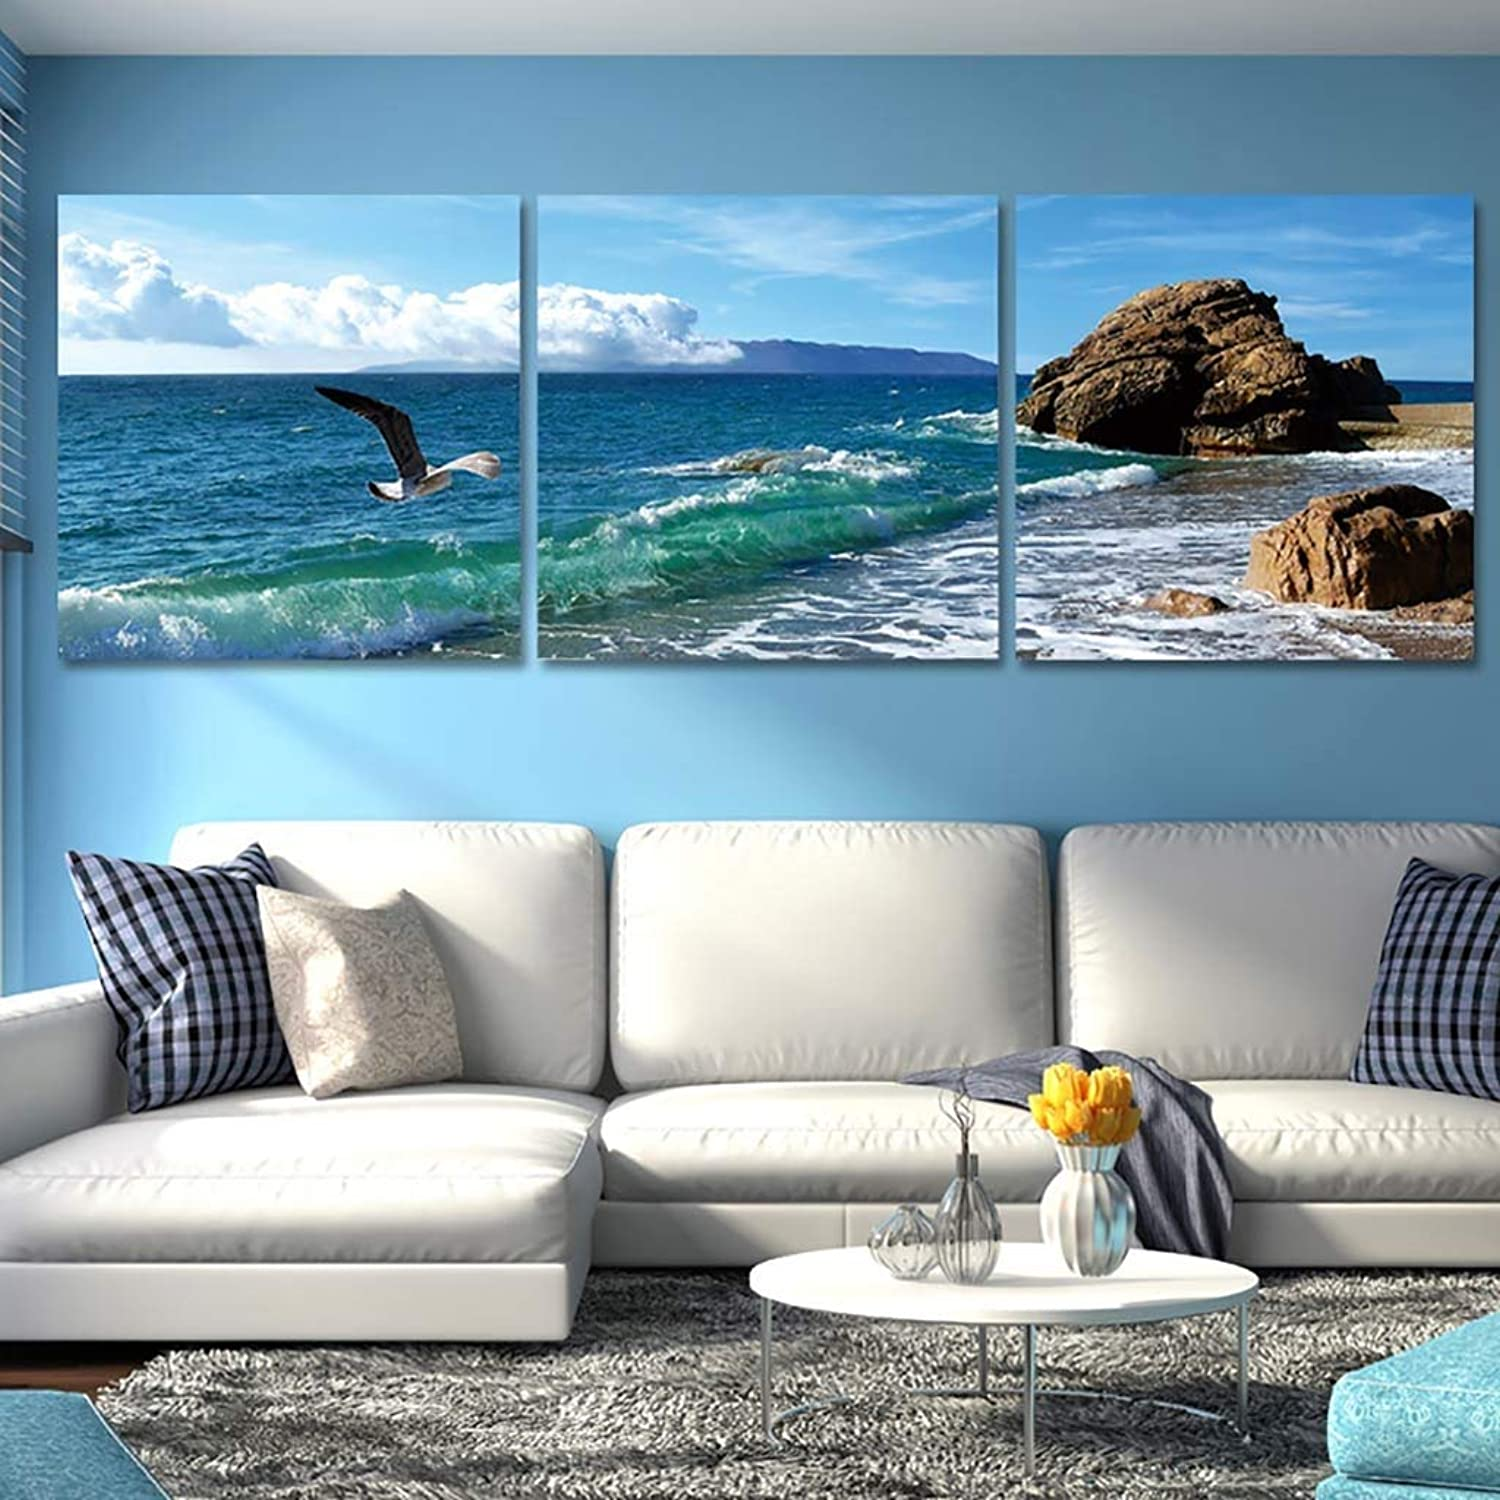 WENJUN Wall Art Picture 3 Panels Modern Stretched And Framed Sea Beach Pictures On Canvas Wall Art For Bedroom Home Decorations,5 colors,4 Sizes ( color   A , Size   6060 cm )